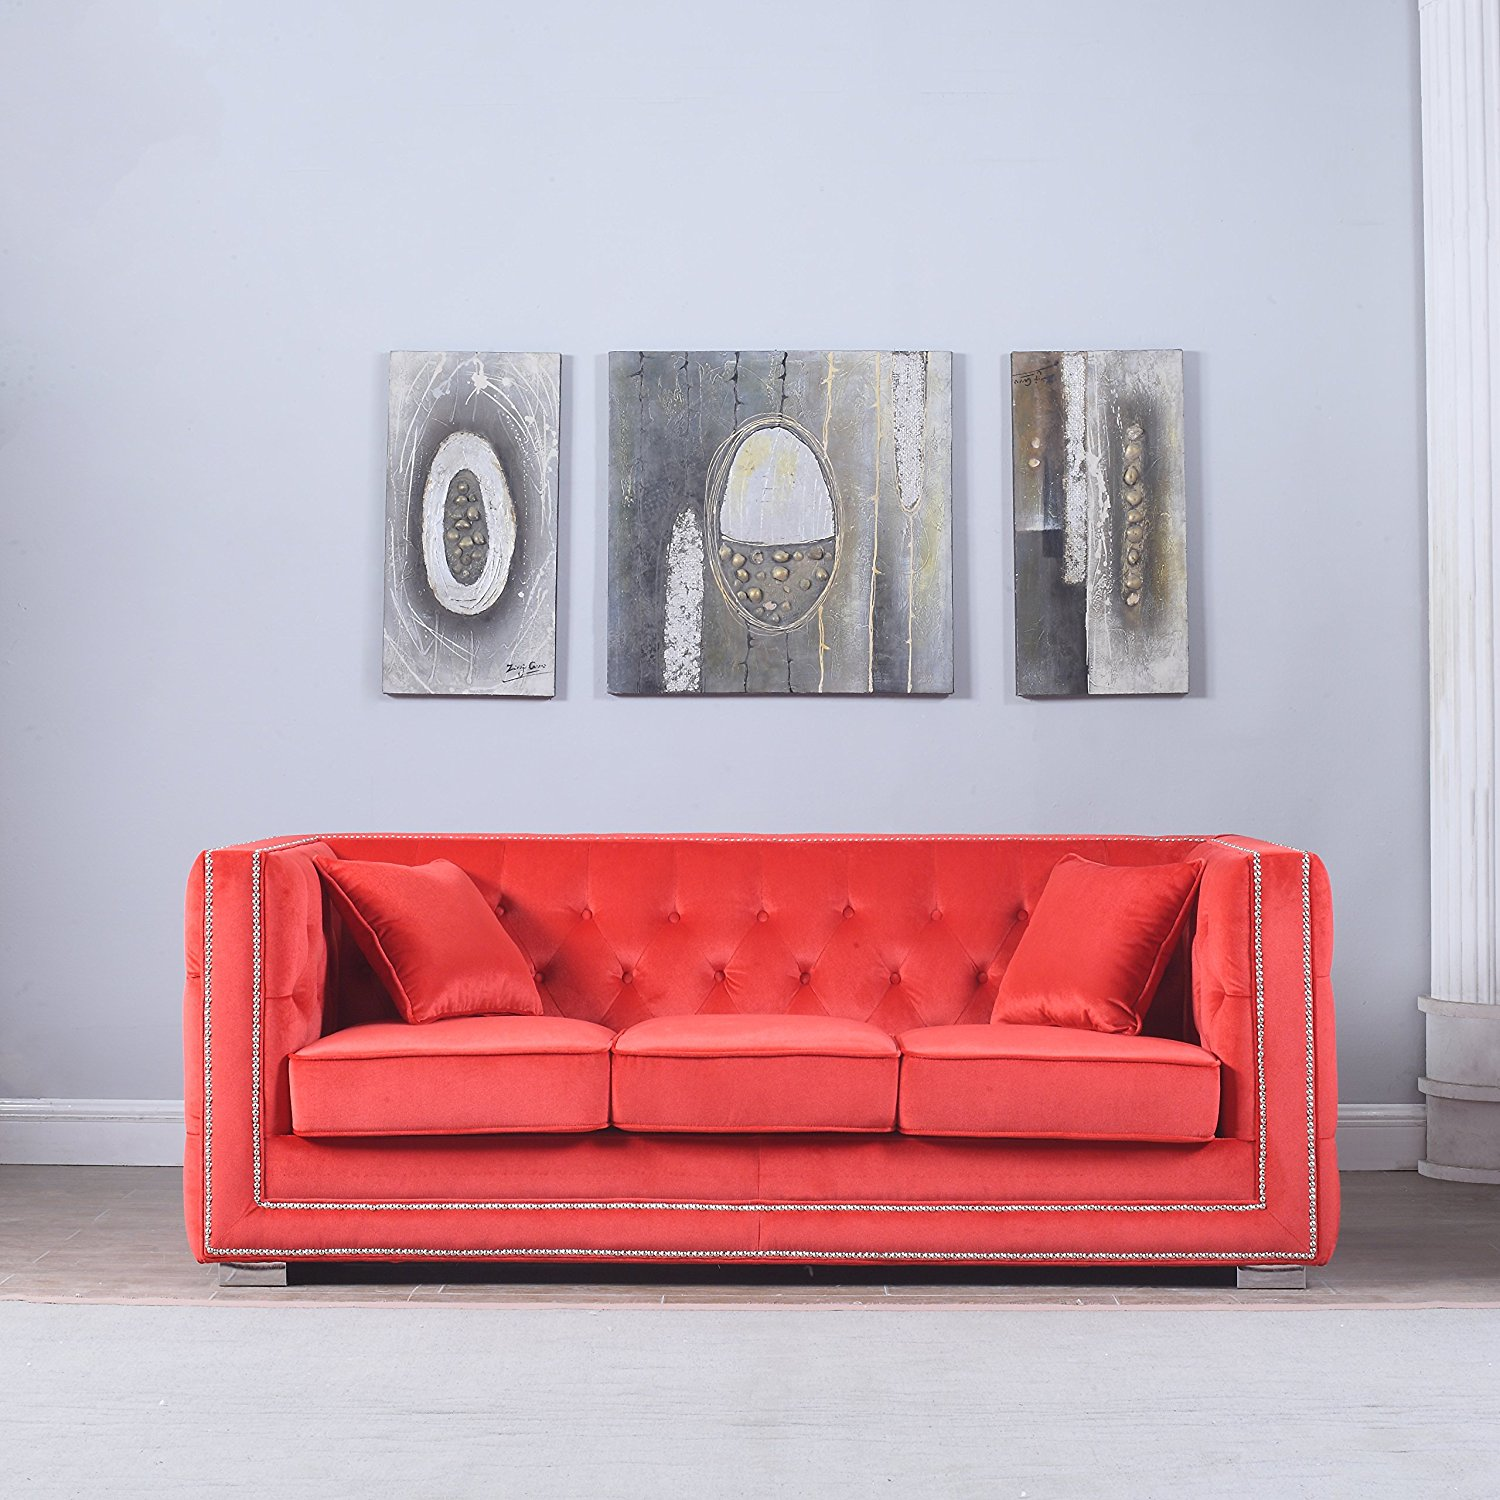 A Touch of Red - While Marilyn's style was almost overwhelmingly simple when it came to interior design, she clearly loved pops of color. A red couch similiar to this sat in the living room of her Brentwood home.